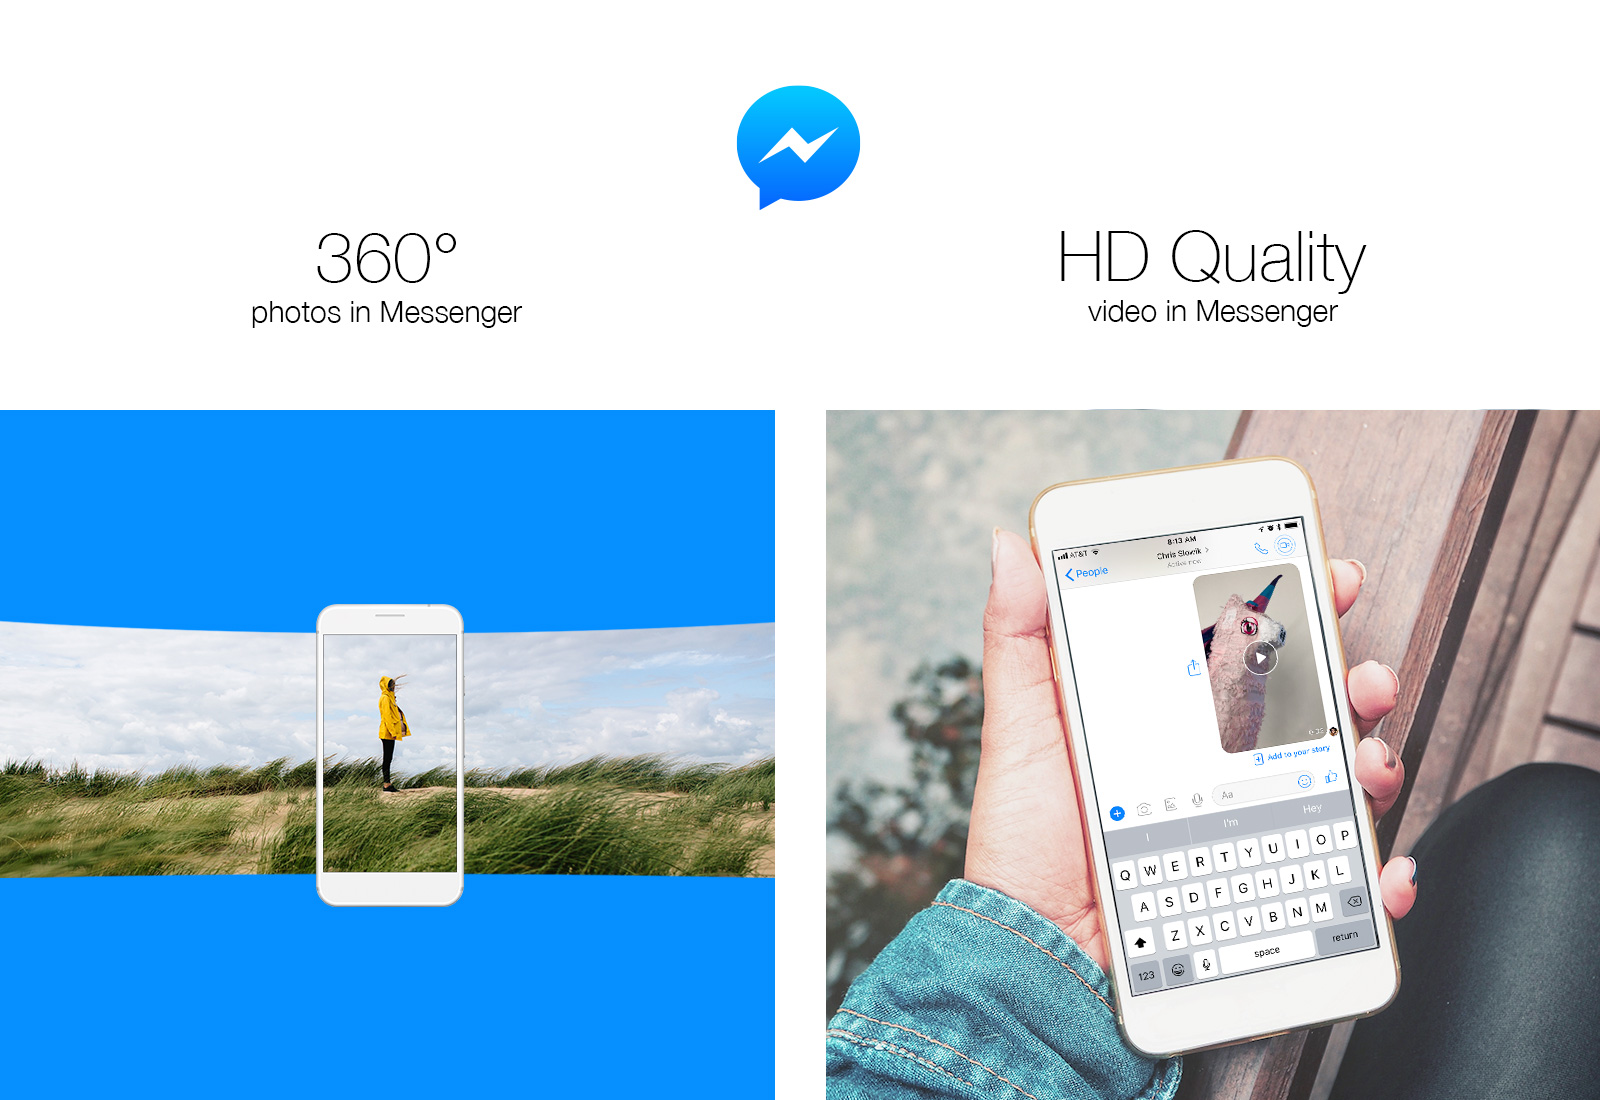 facebook messenger adds support for 360 degree photos and hd quality